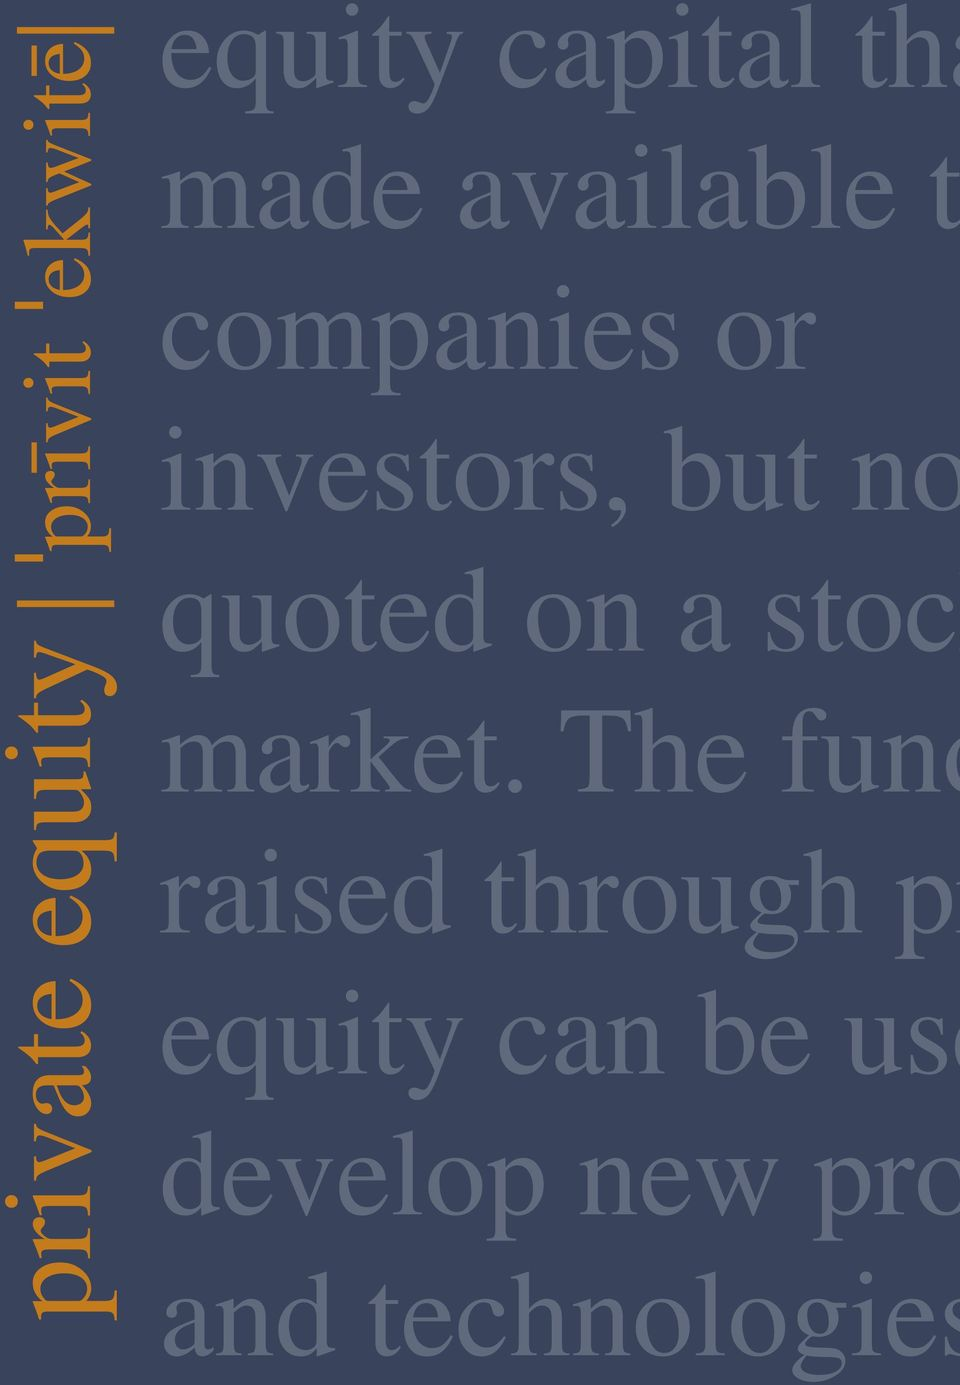 The fund equity can be use made available